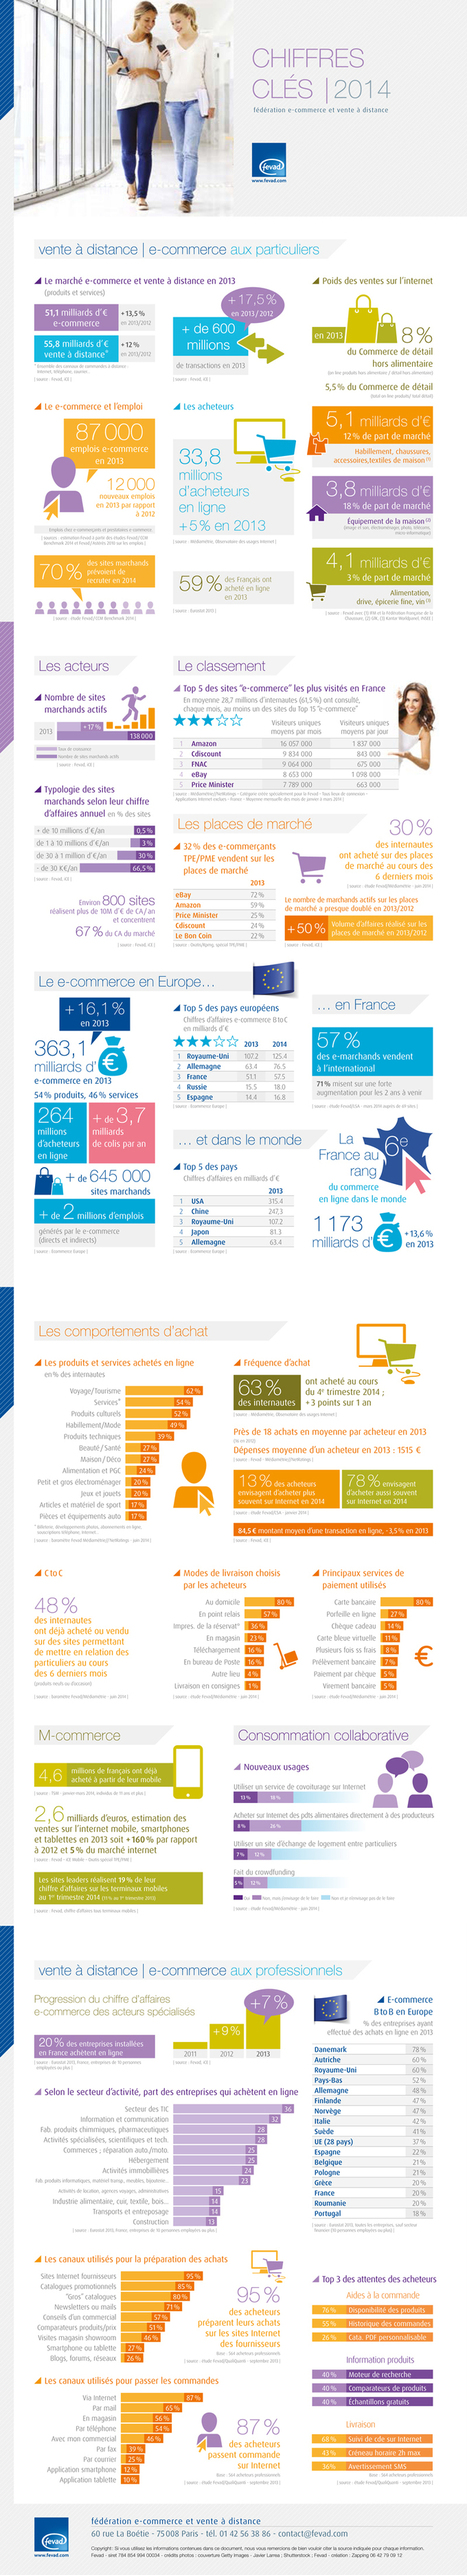 Infographie: Enjeux du Ecommerce 2014 | Digital Martketing 101 | Scoop.it